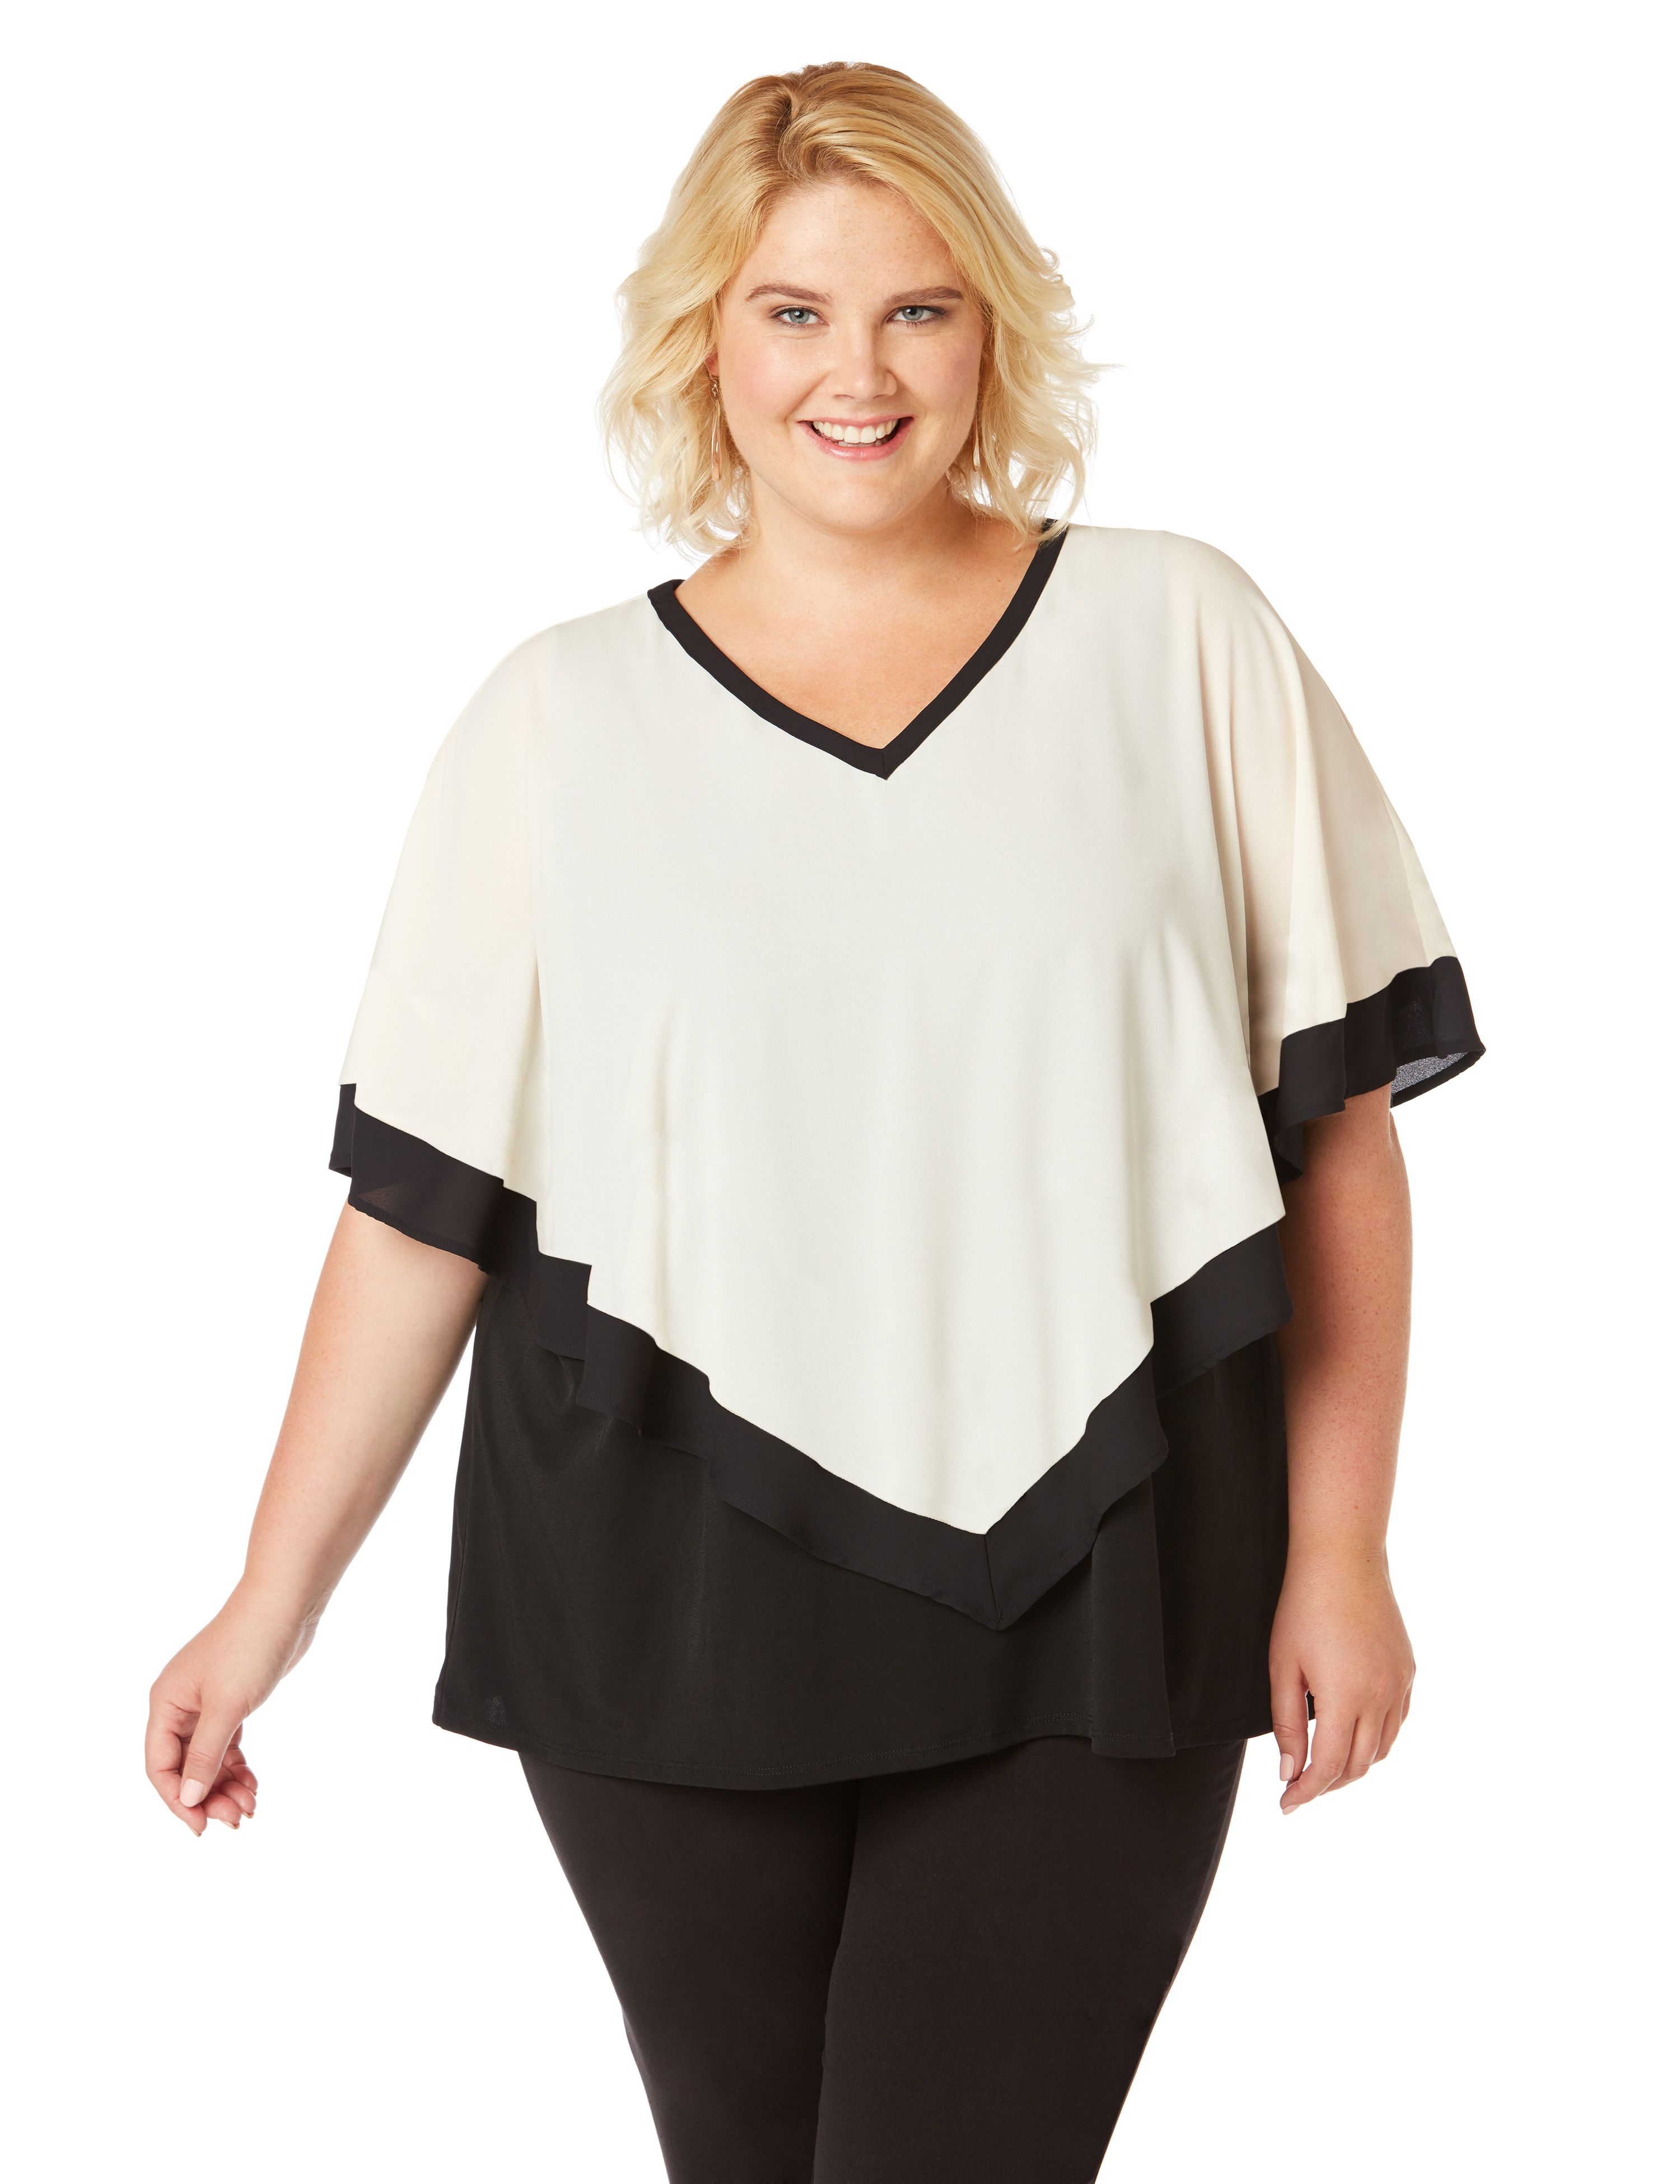 Tribeca Overlay Top 2 Fer Gtte/ITY Colorblocked Knit To MP-300076629